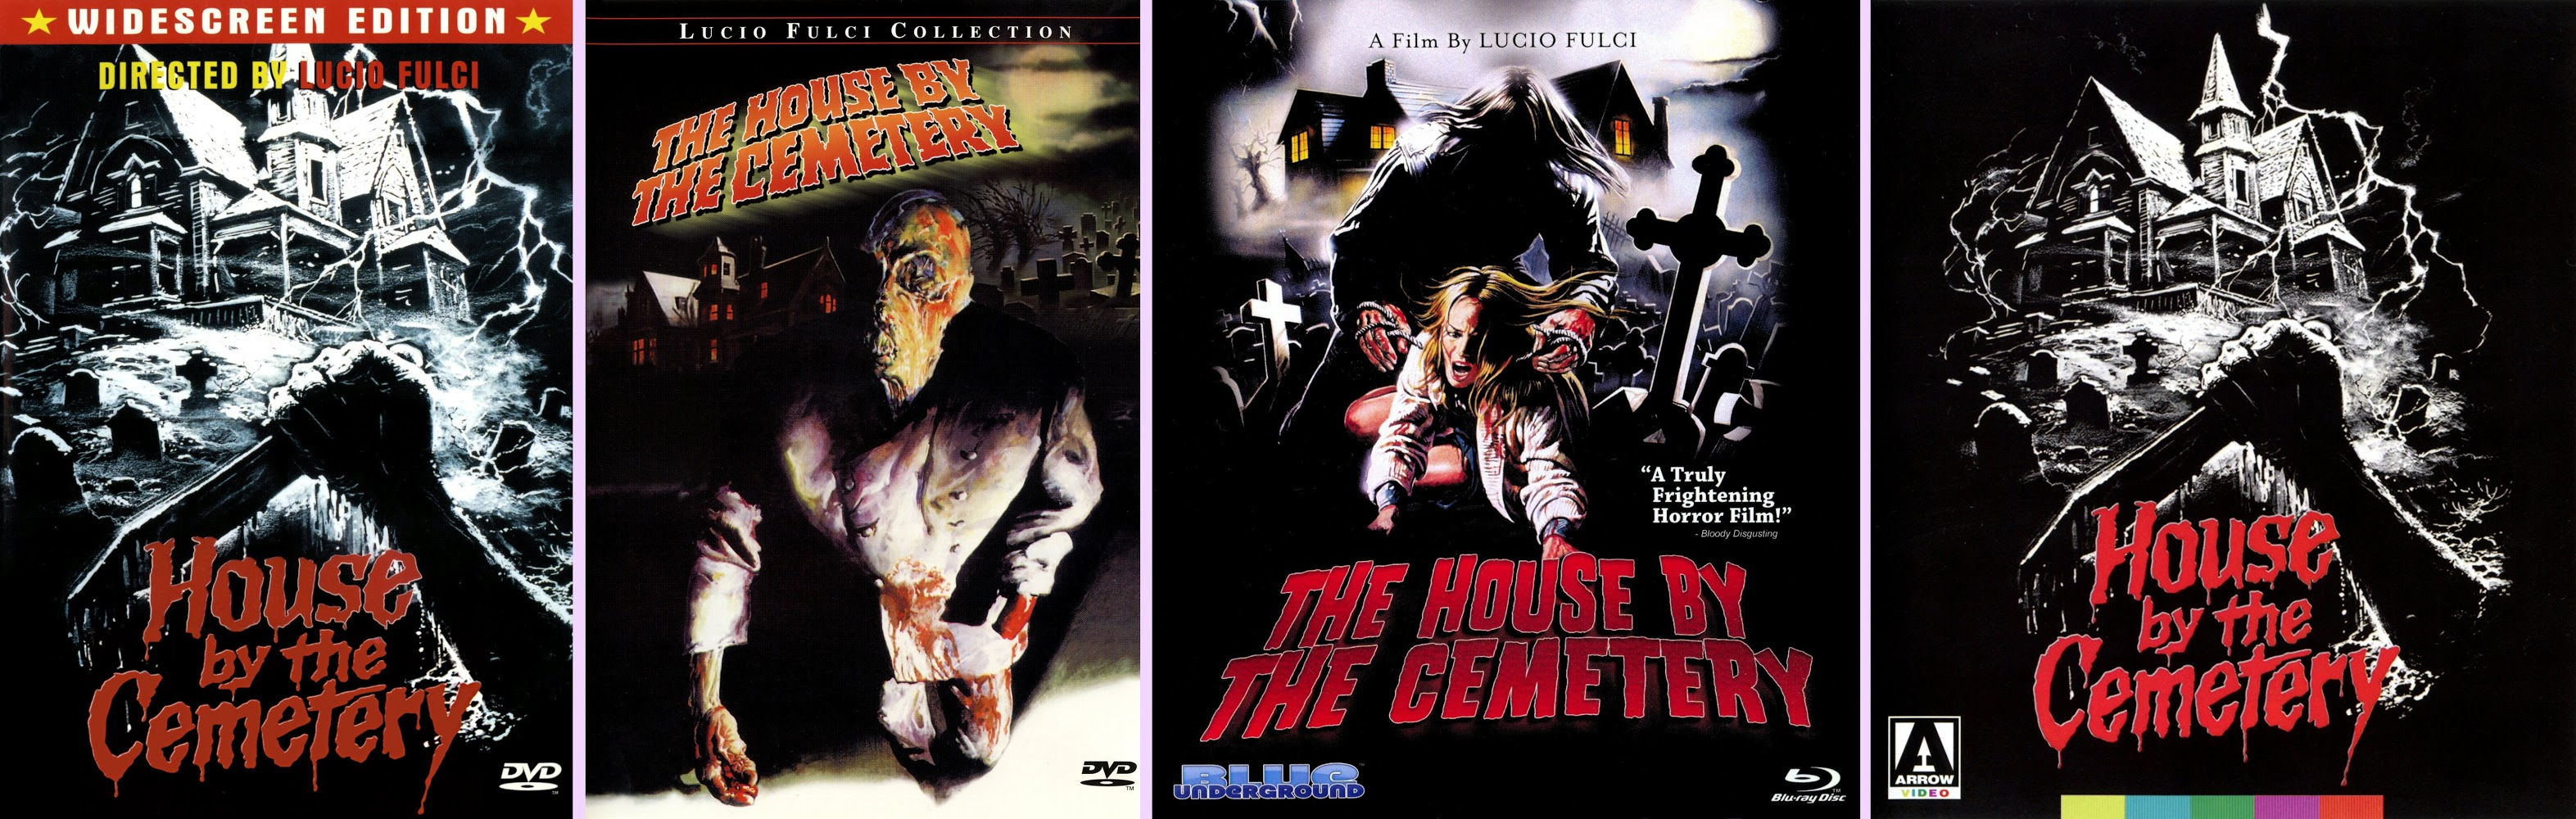 Dvd Exotica The House By The Cemetery Dvd Blu Ray Comparison